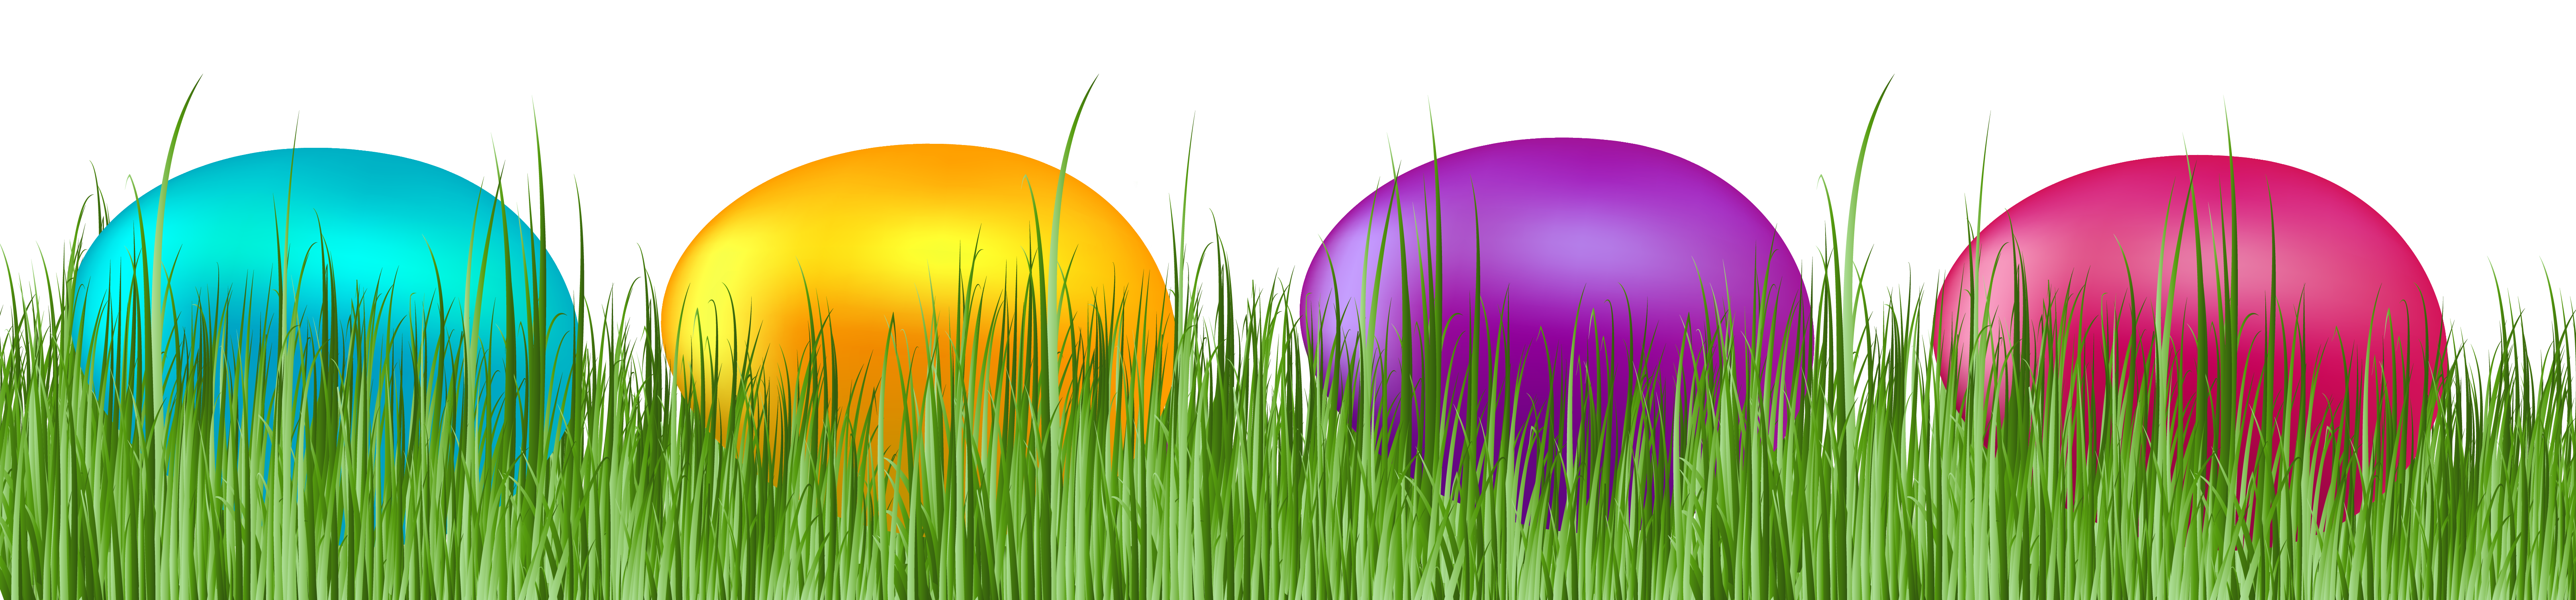 Easter egg border png. Grass with eggs transparent